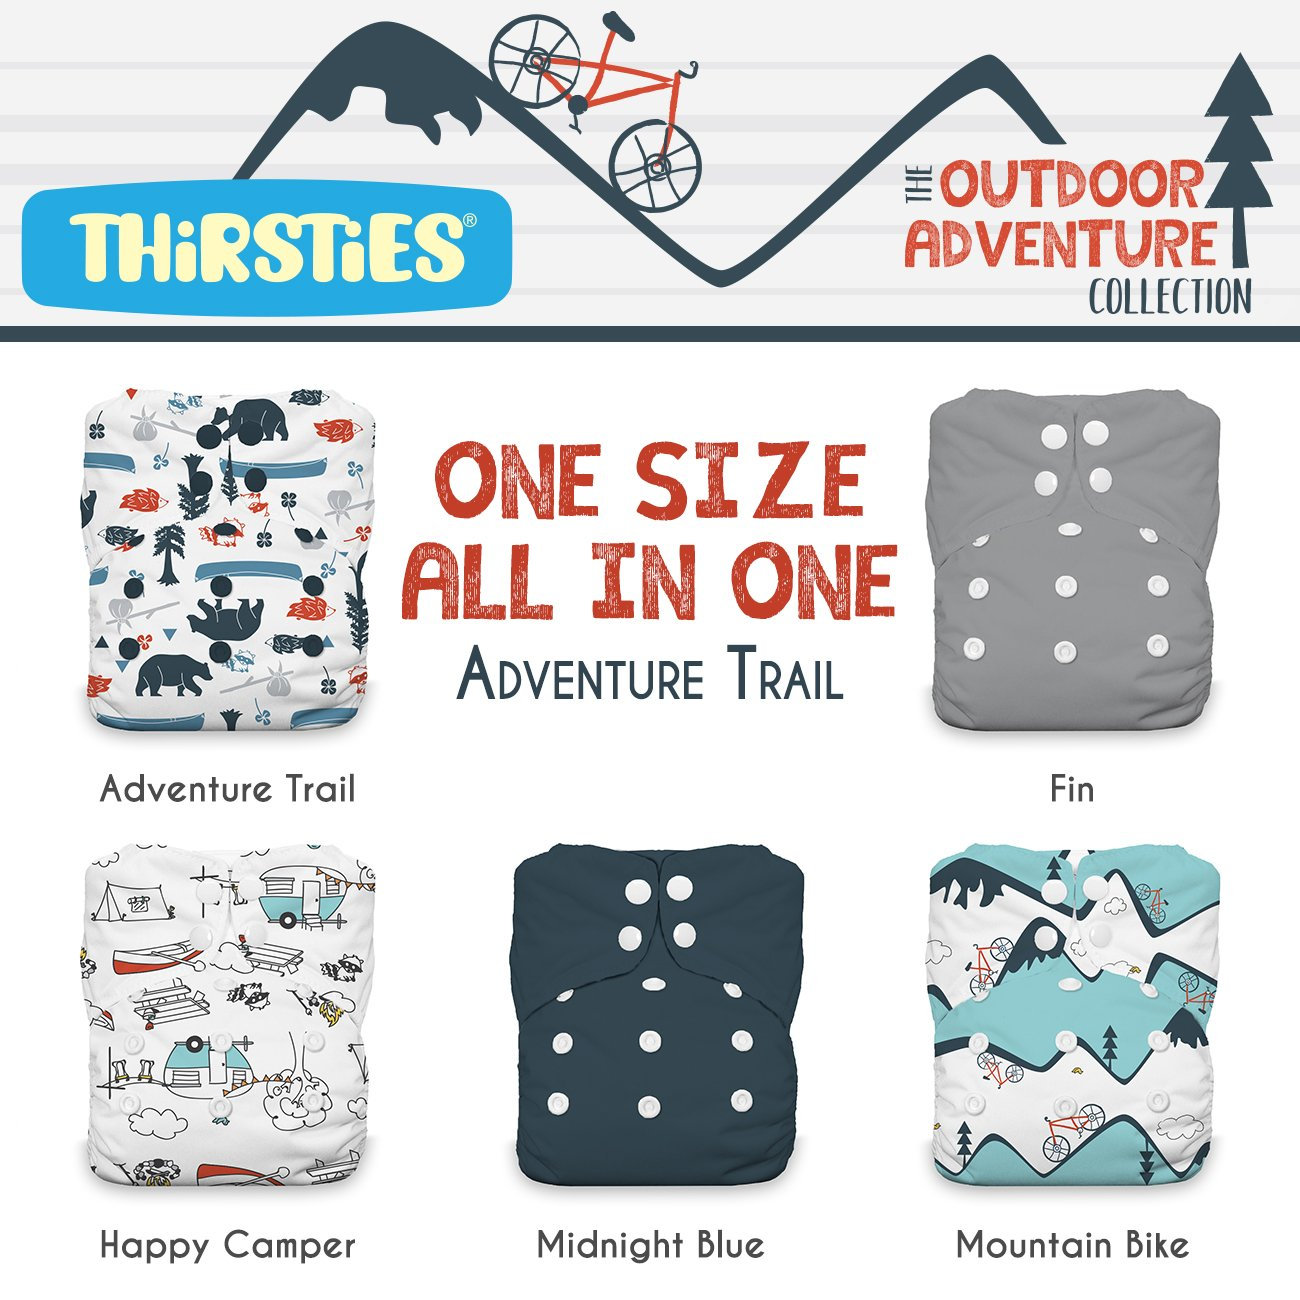 Thirsties Package, Snap One Size All In One, Outdoor Adventure Collection Adventure Trail